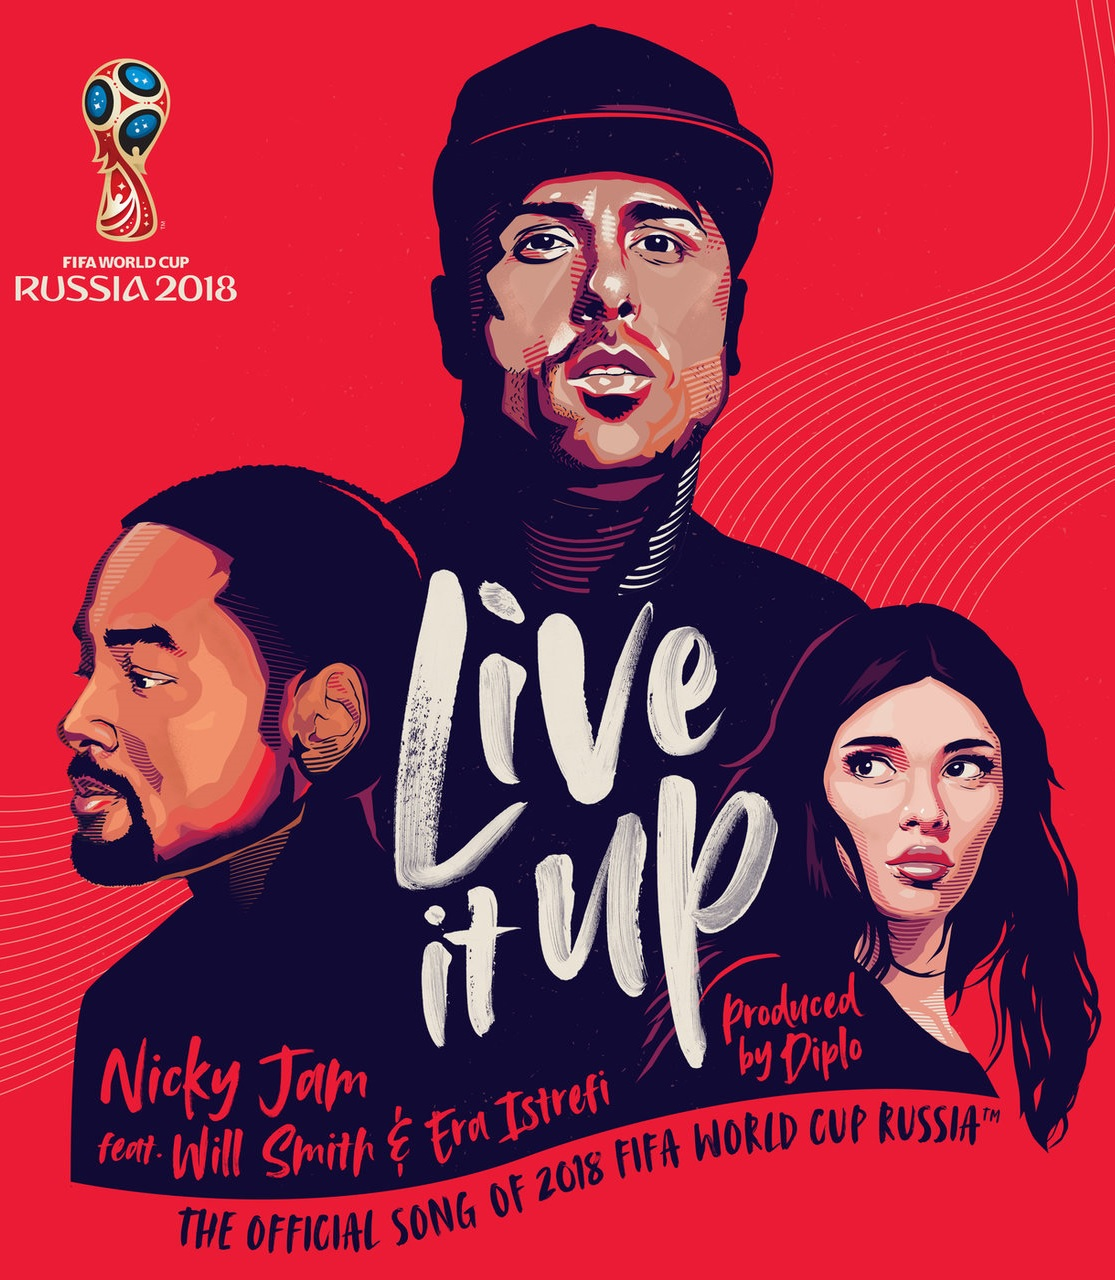 Live-It-Up_Russia_2018_Official_Music_Video دانلود موزیک ویدئو رسمی جام جهانی 2018 Live iT Up 1080P Full-HD